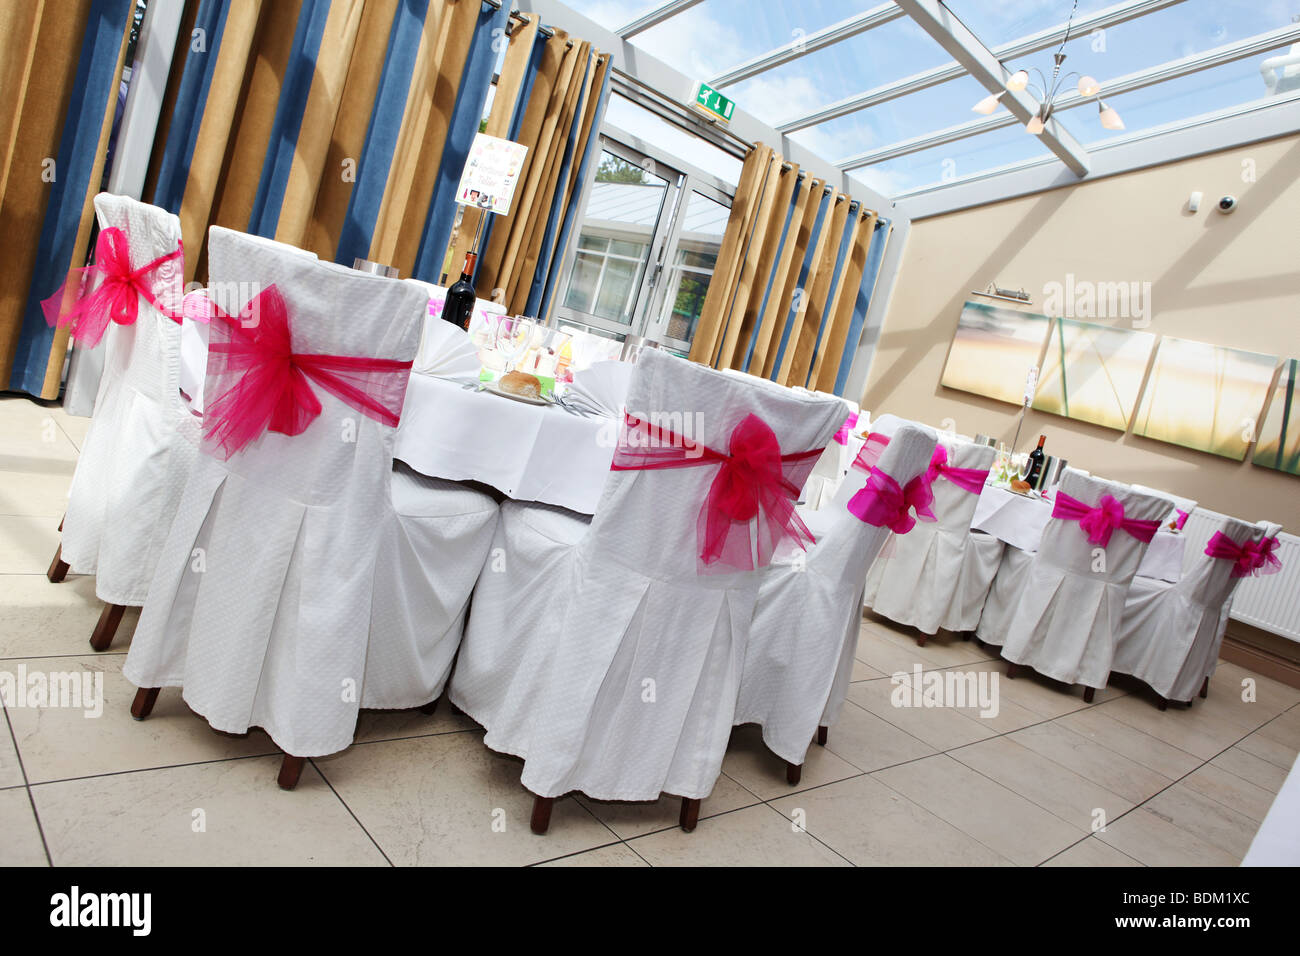 Wedding Chair Covers High Resolution Stock Photography And Images Alamy